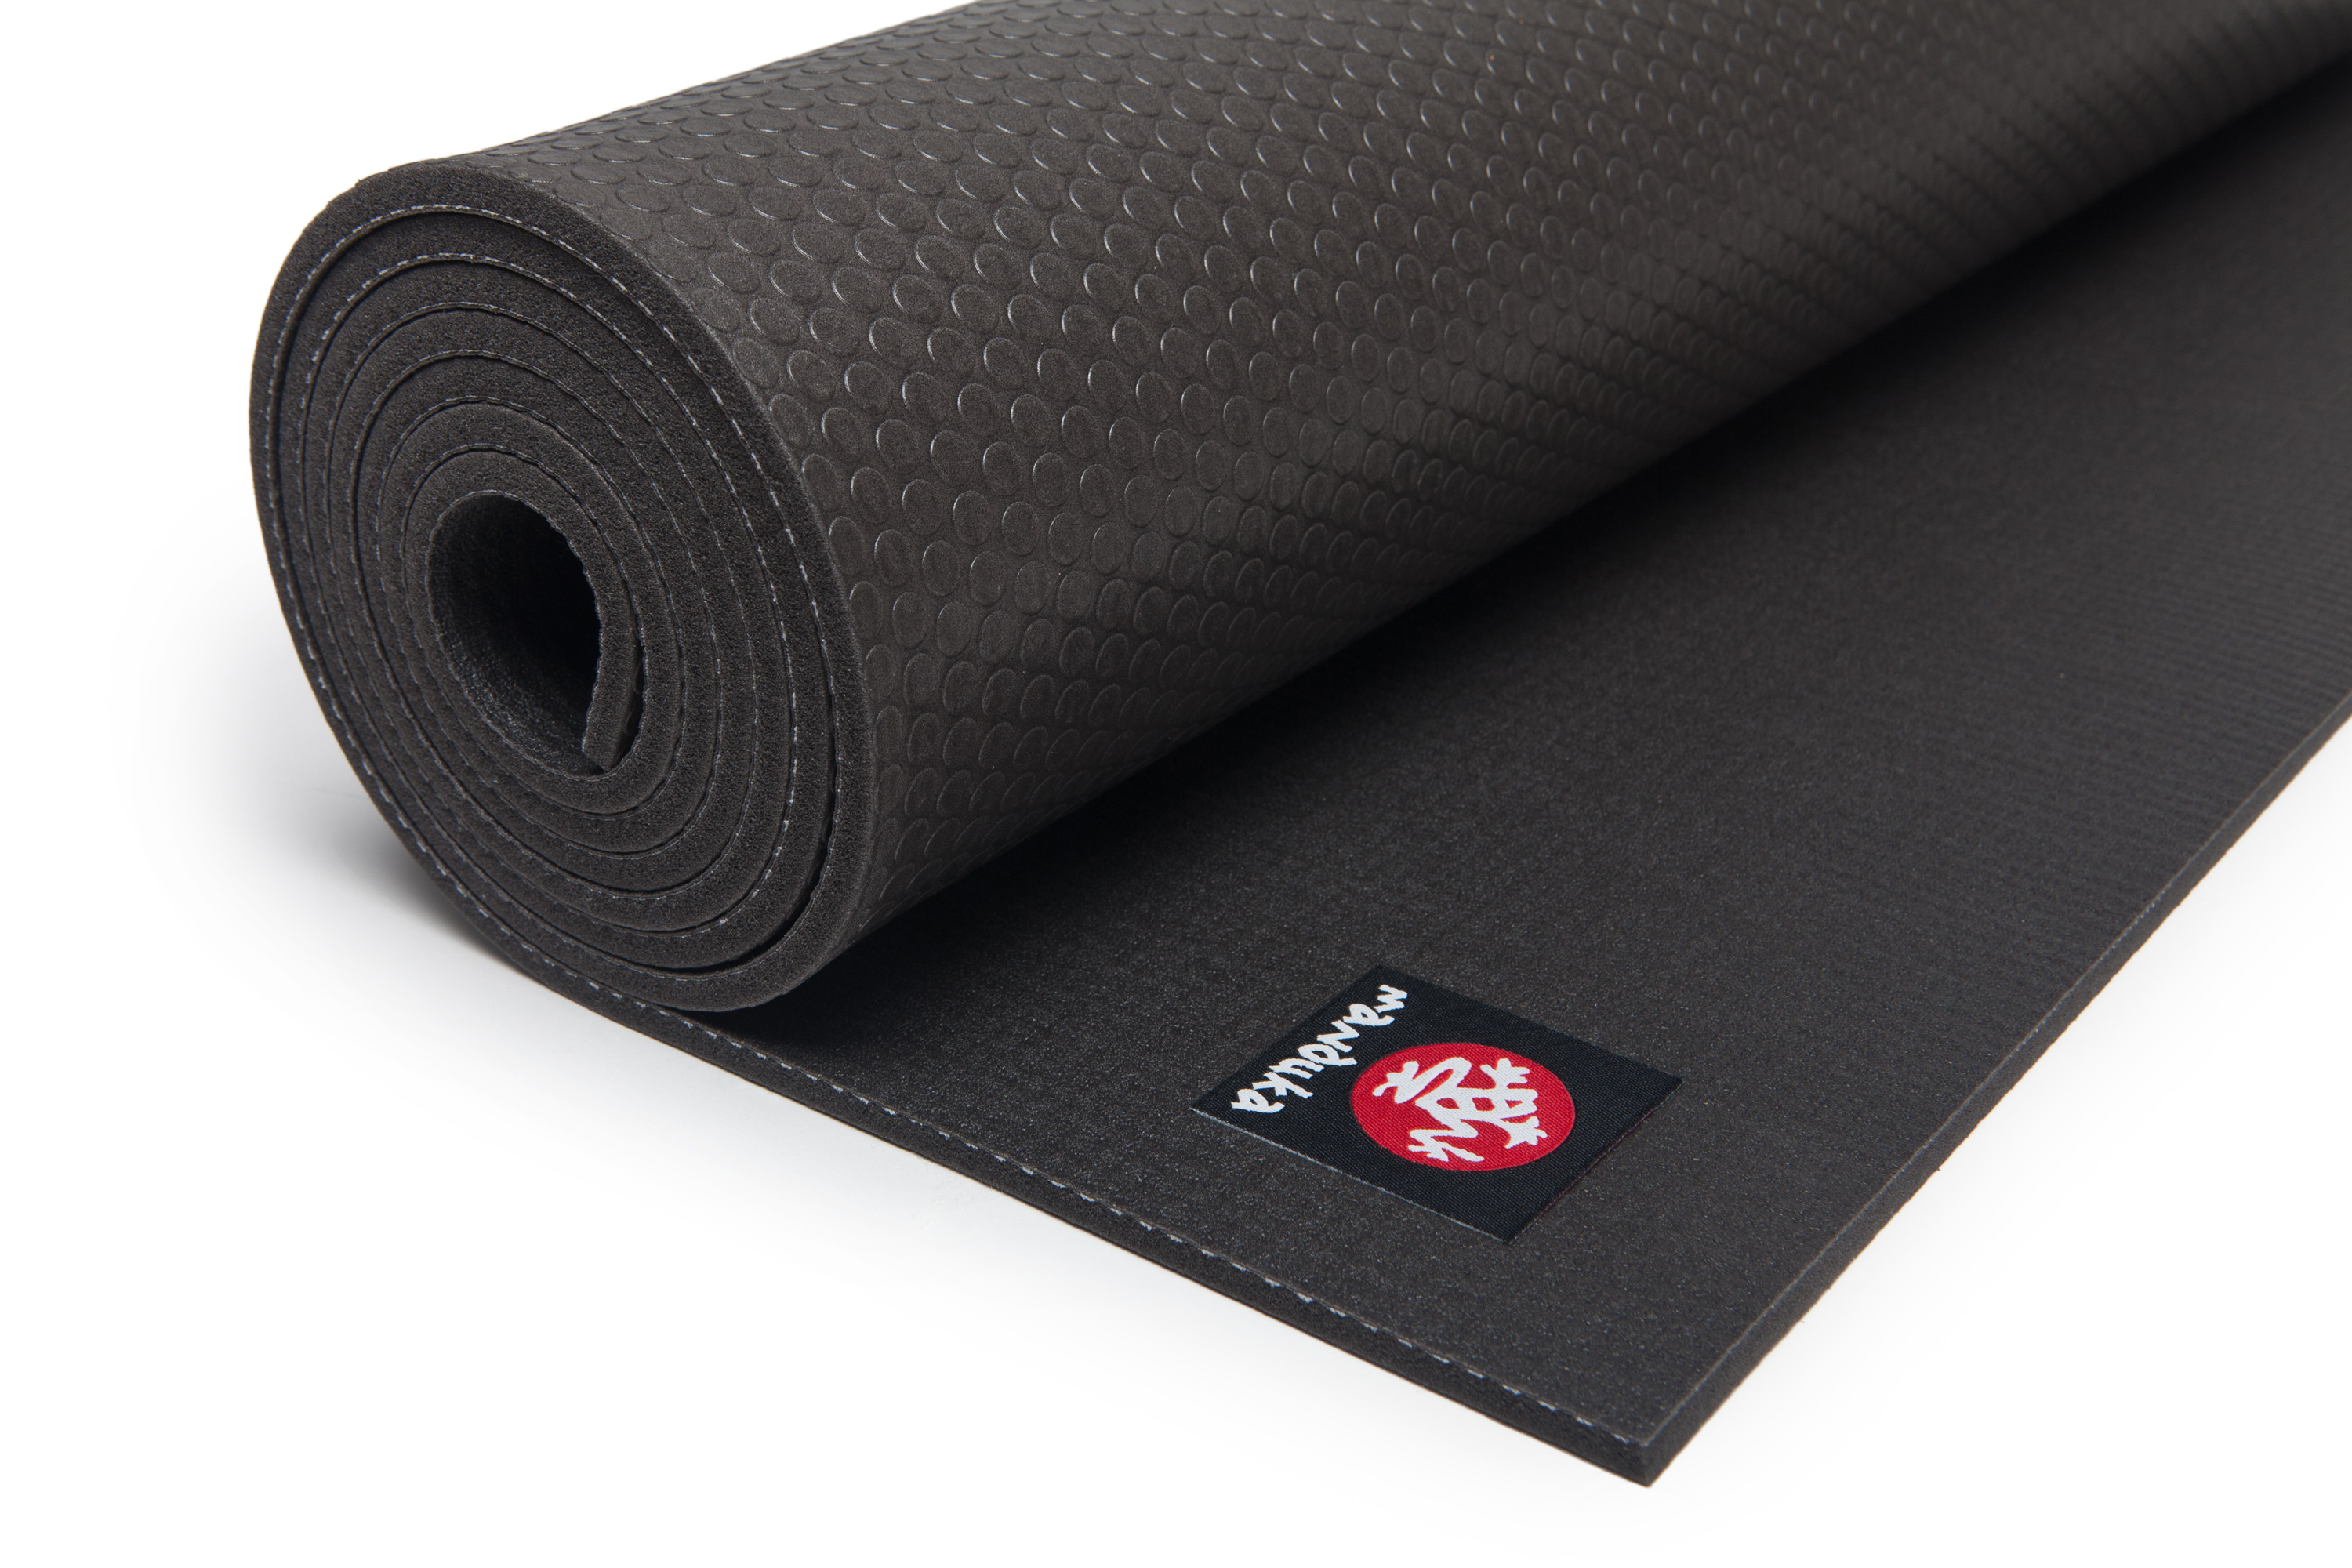 roll accessories harmony midnight yoga mat manduka prolite jade medres zoom